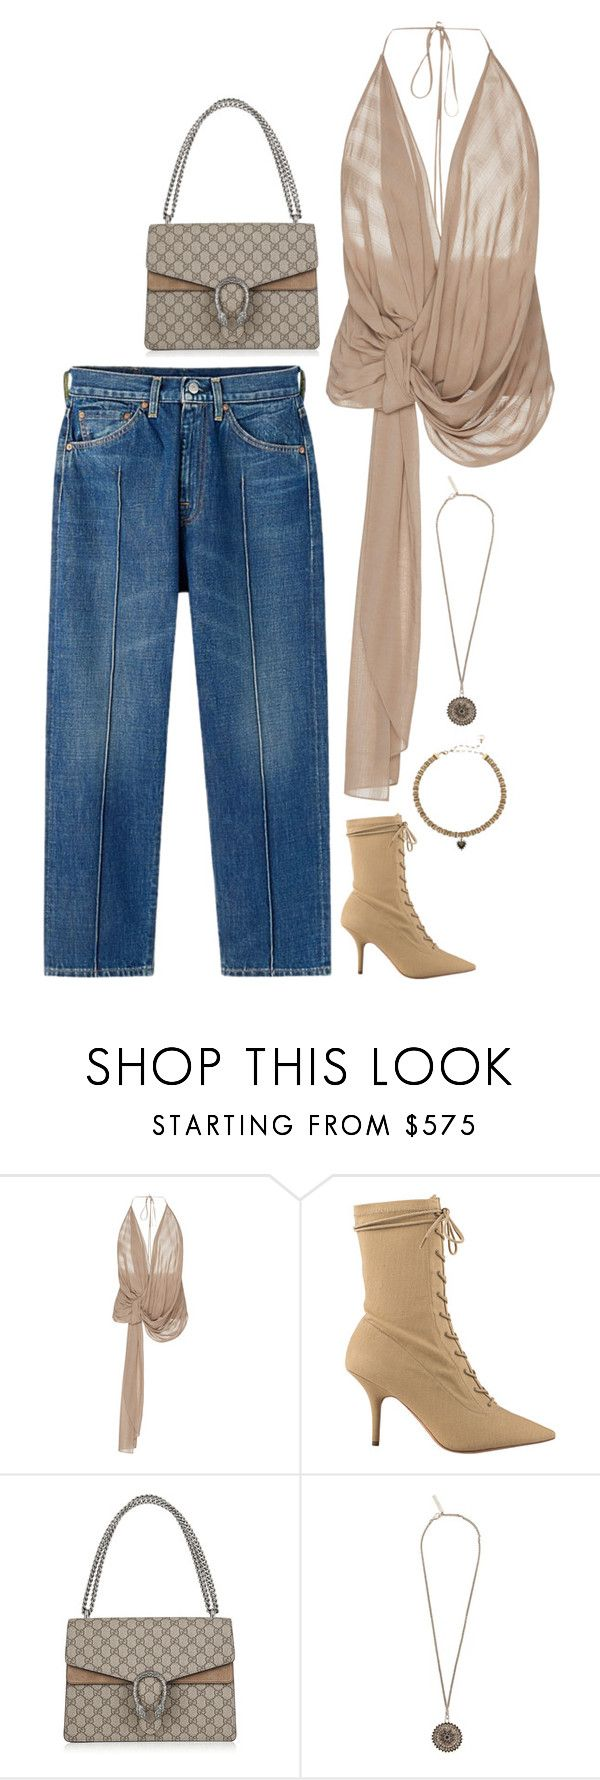 """""""Jacquemus top and yeezy shoes with blue jeans"""" by hugovrcl ❤ liked on Polyvore featuring Jacquemus, Yeezy by Kanye West, Gucci and Givenchy"""